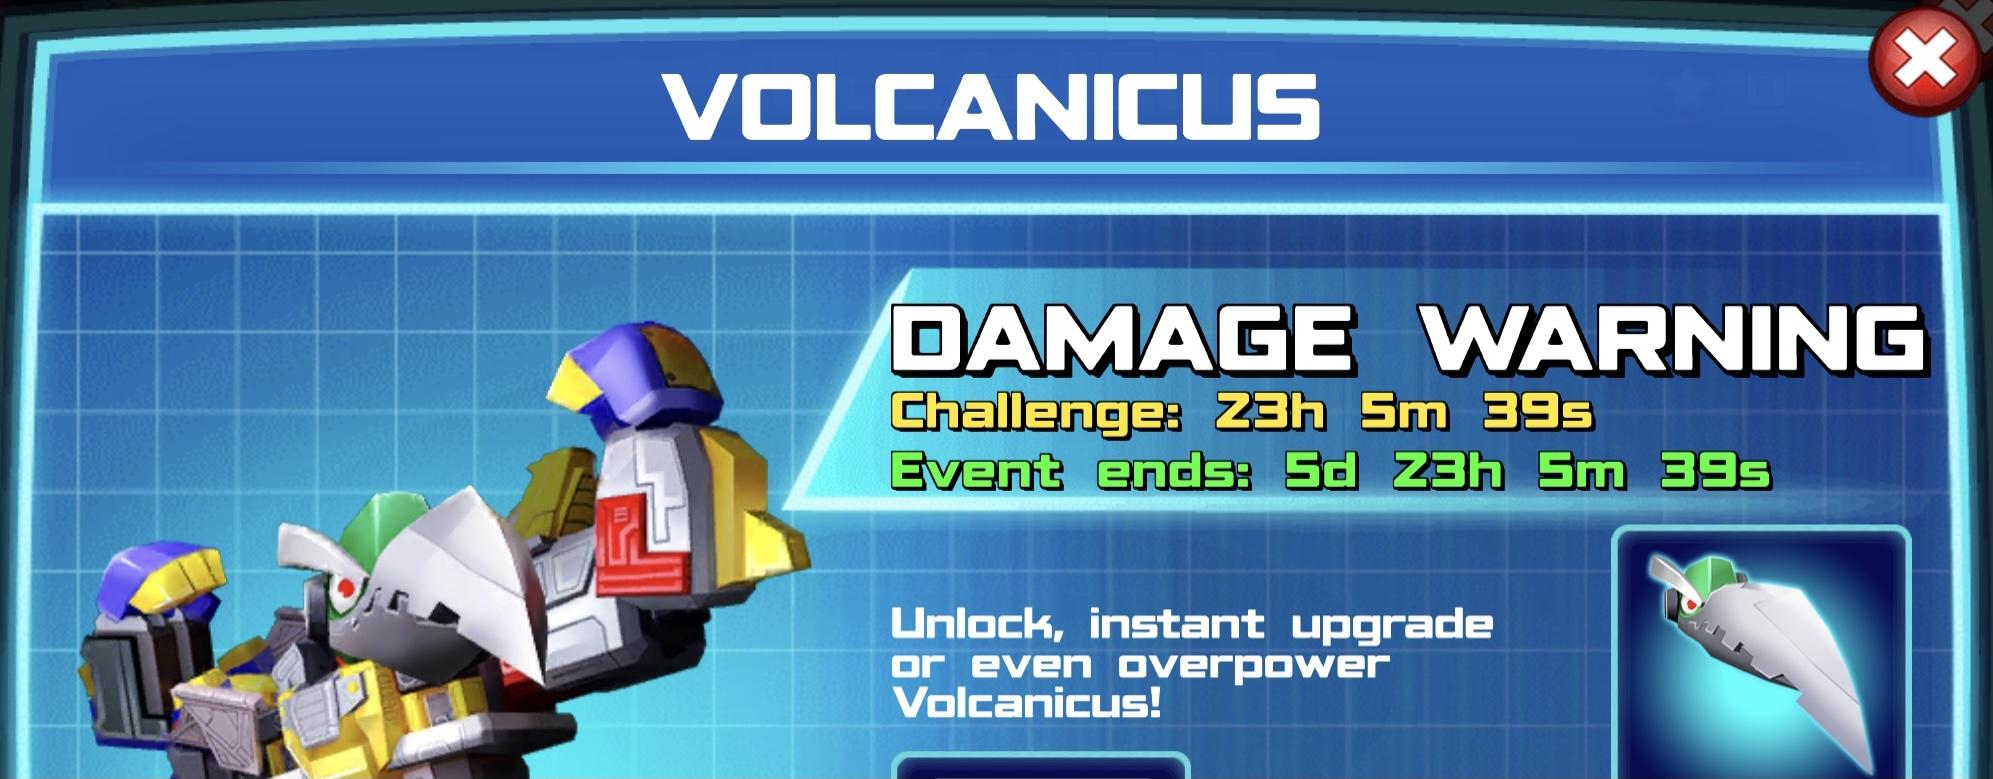 The event banner for Volcanicus